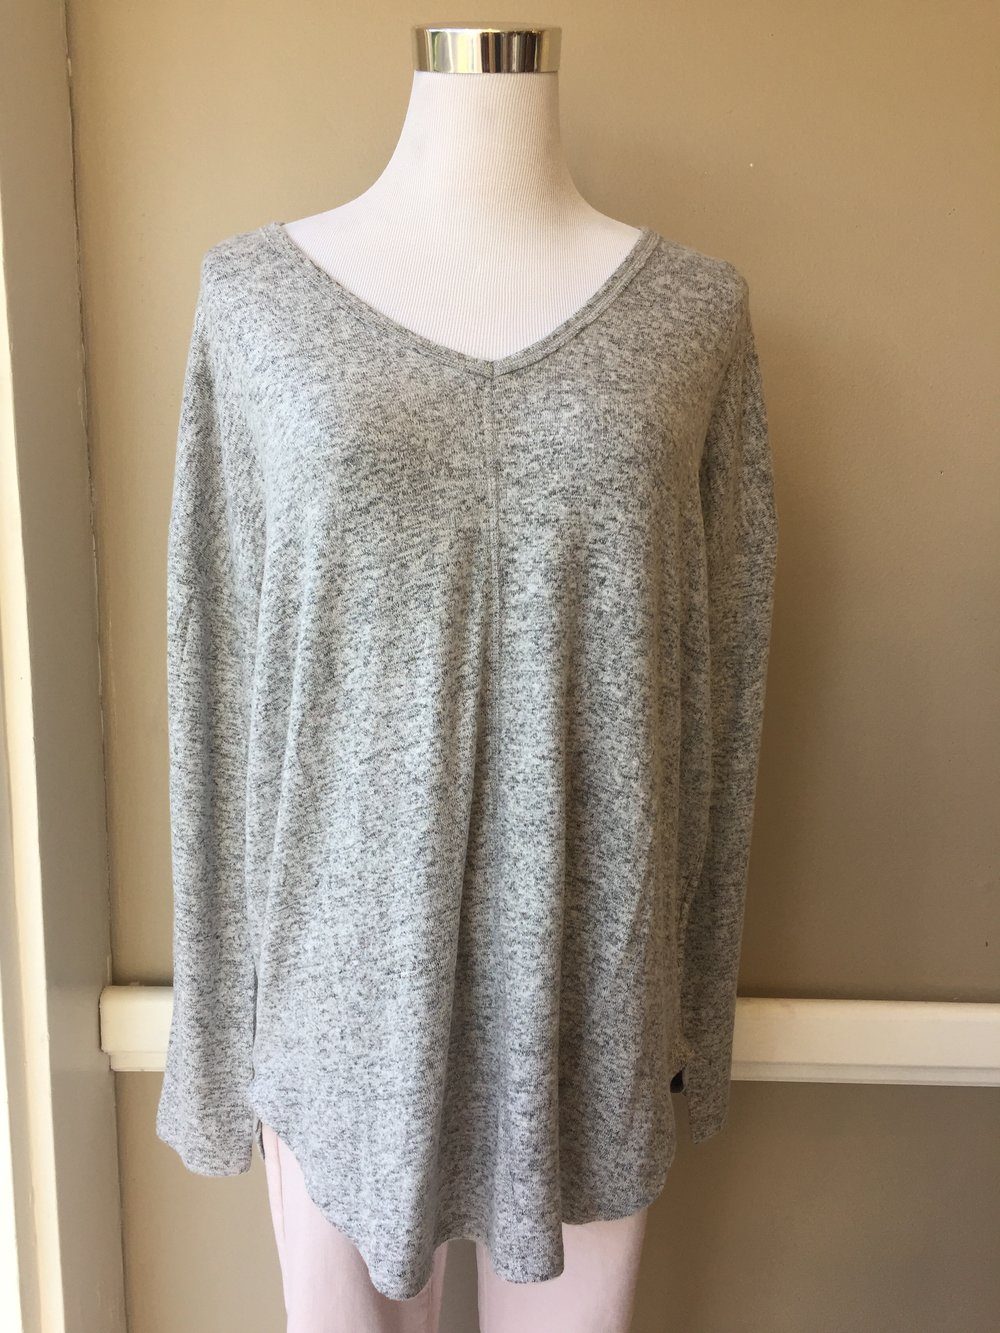 Staccato V Neck (Grey and Charcoal $34)